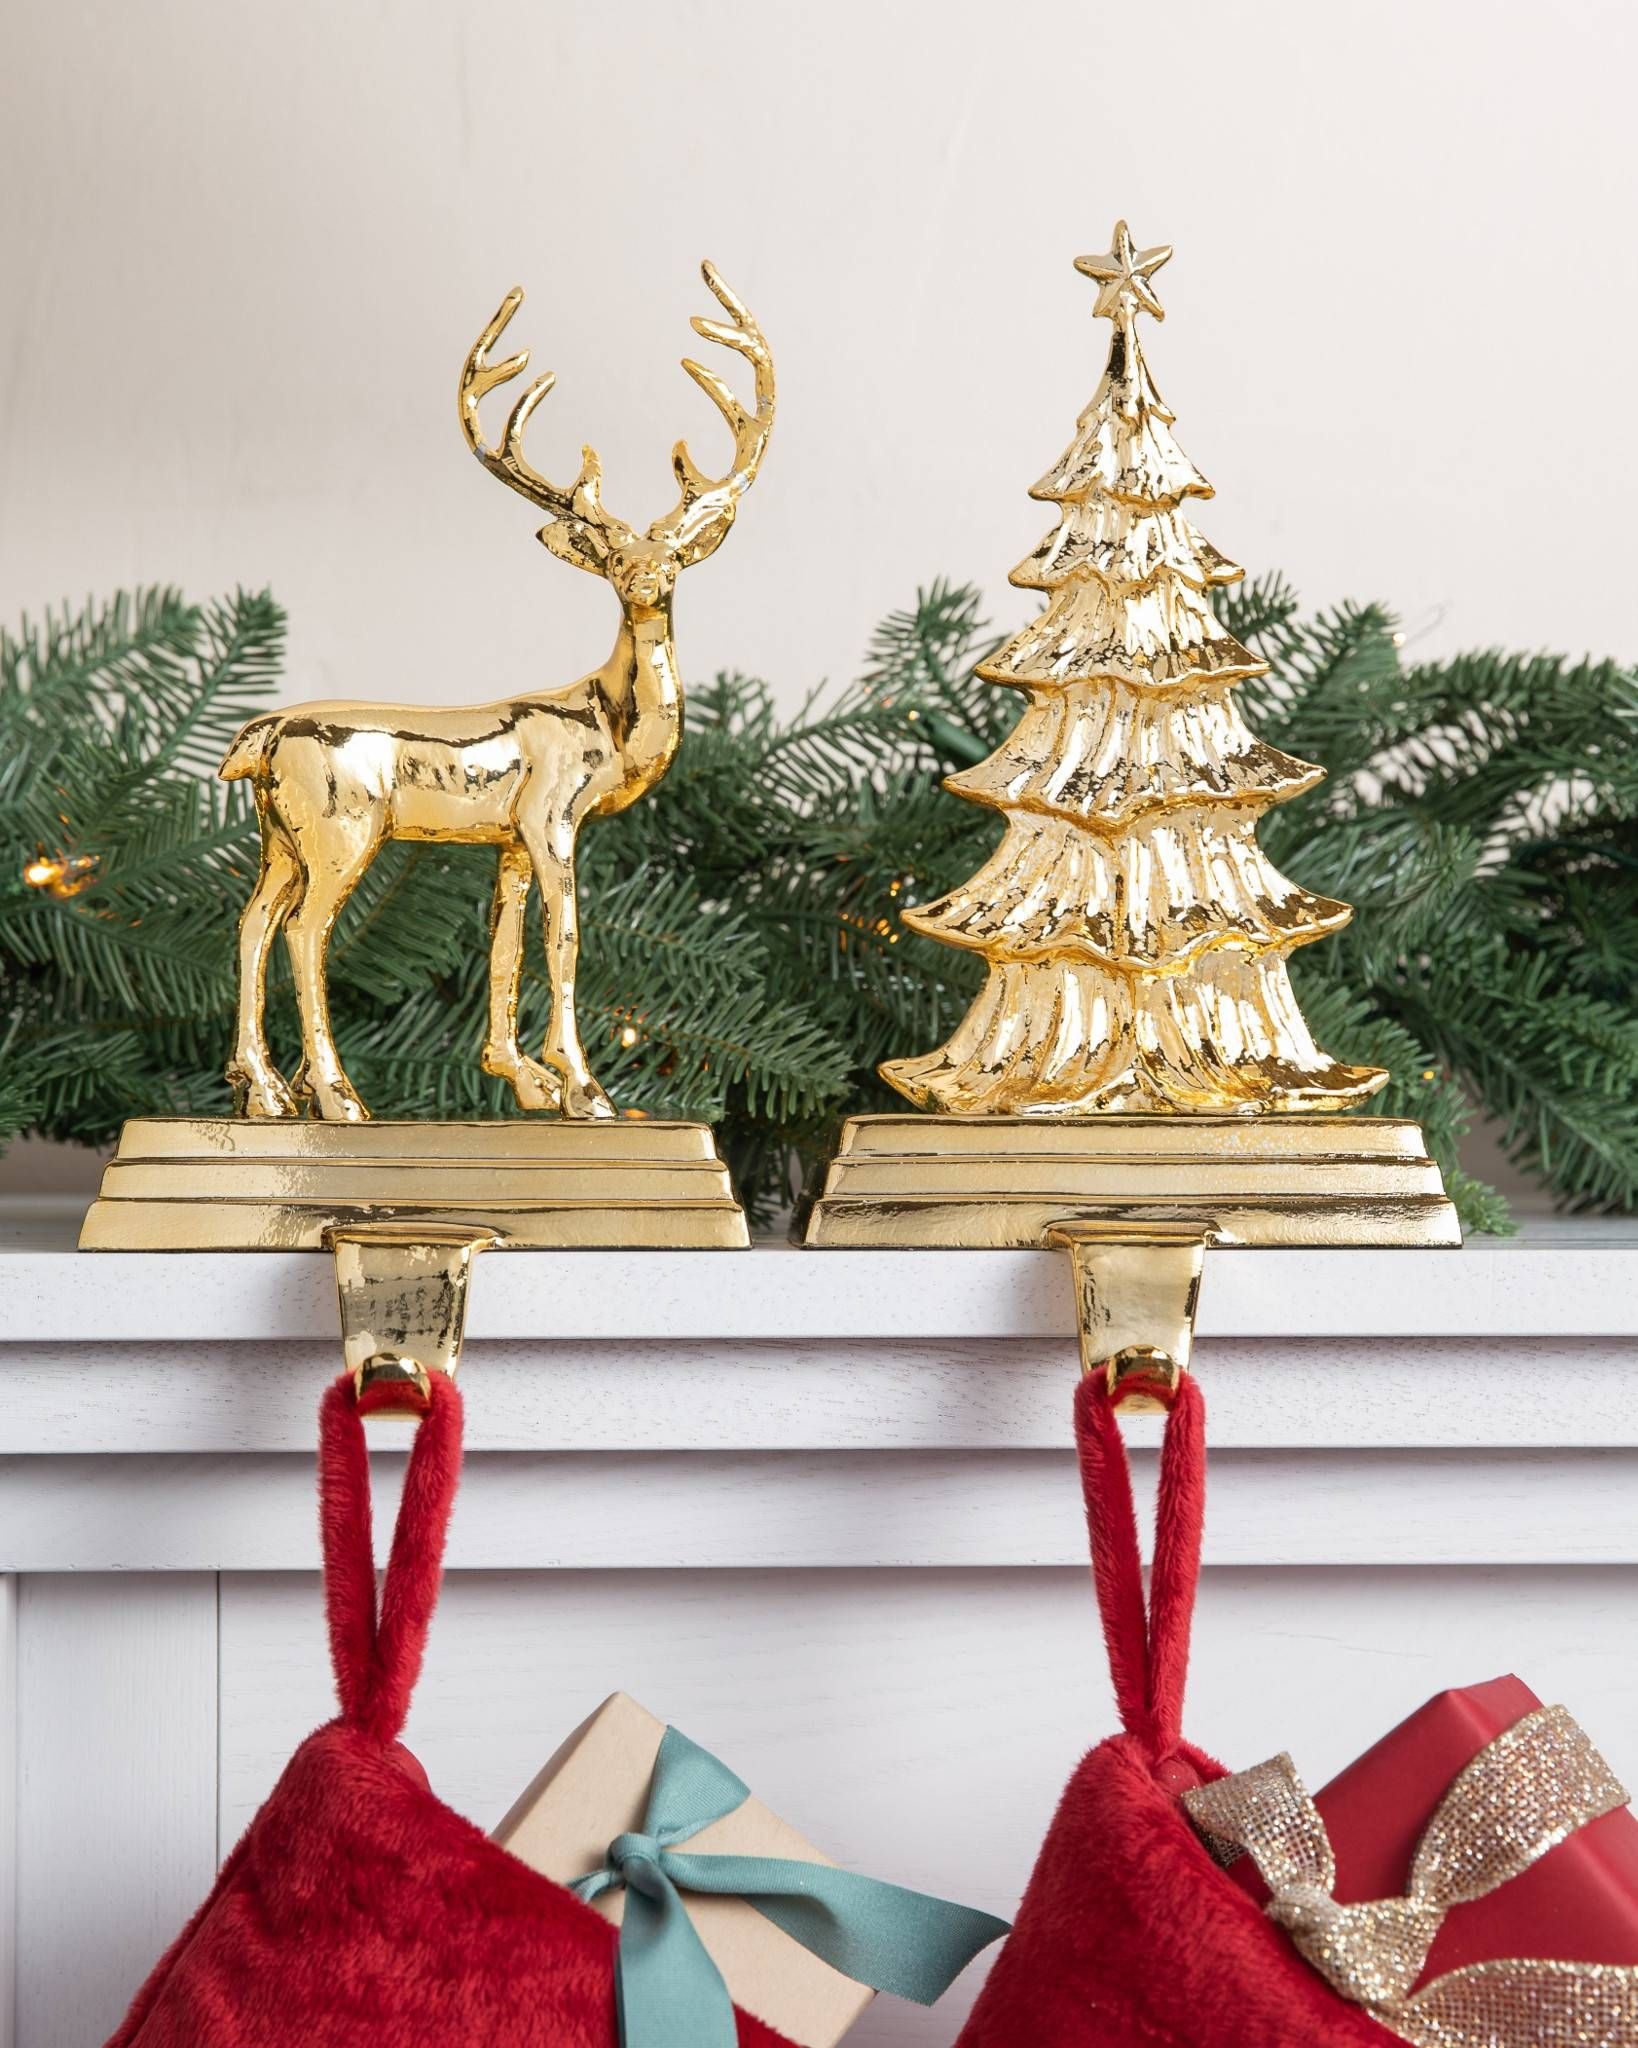 Cast By Hand From Pure Aluminum These Holders Are Heavily Weighted To Keep Your Stockings Secure Throug Stocking Holders Christmas Collectibles Holiday Mantel